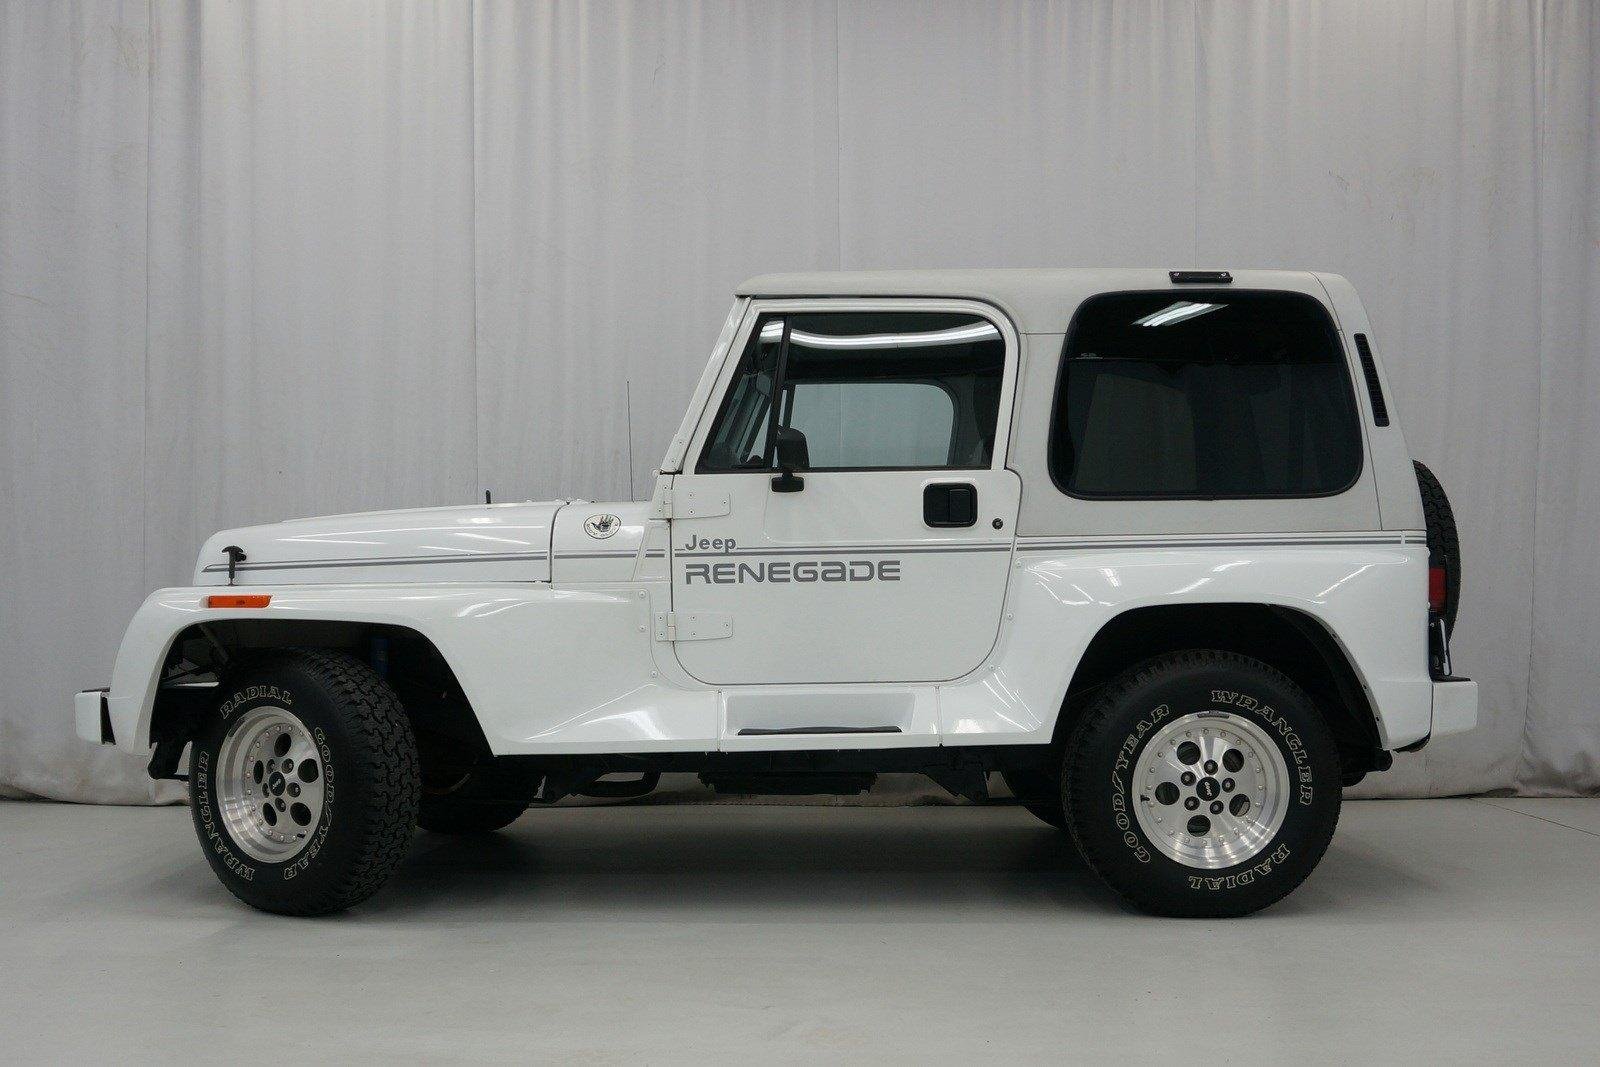 Used-1993-Jeep-Wrangler-Renegade